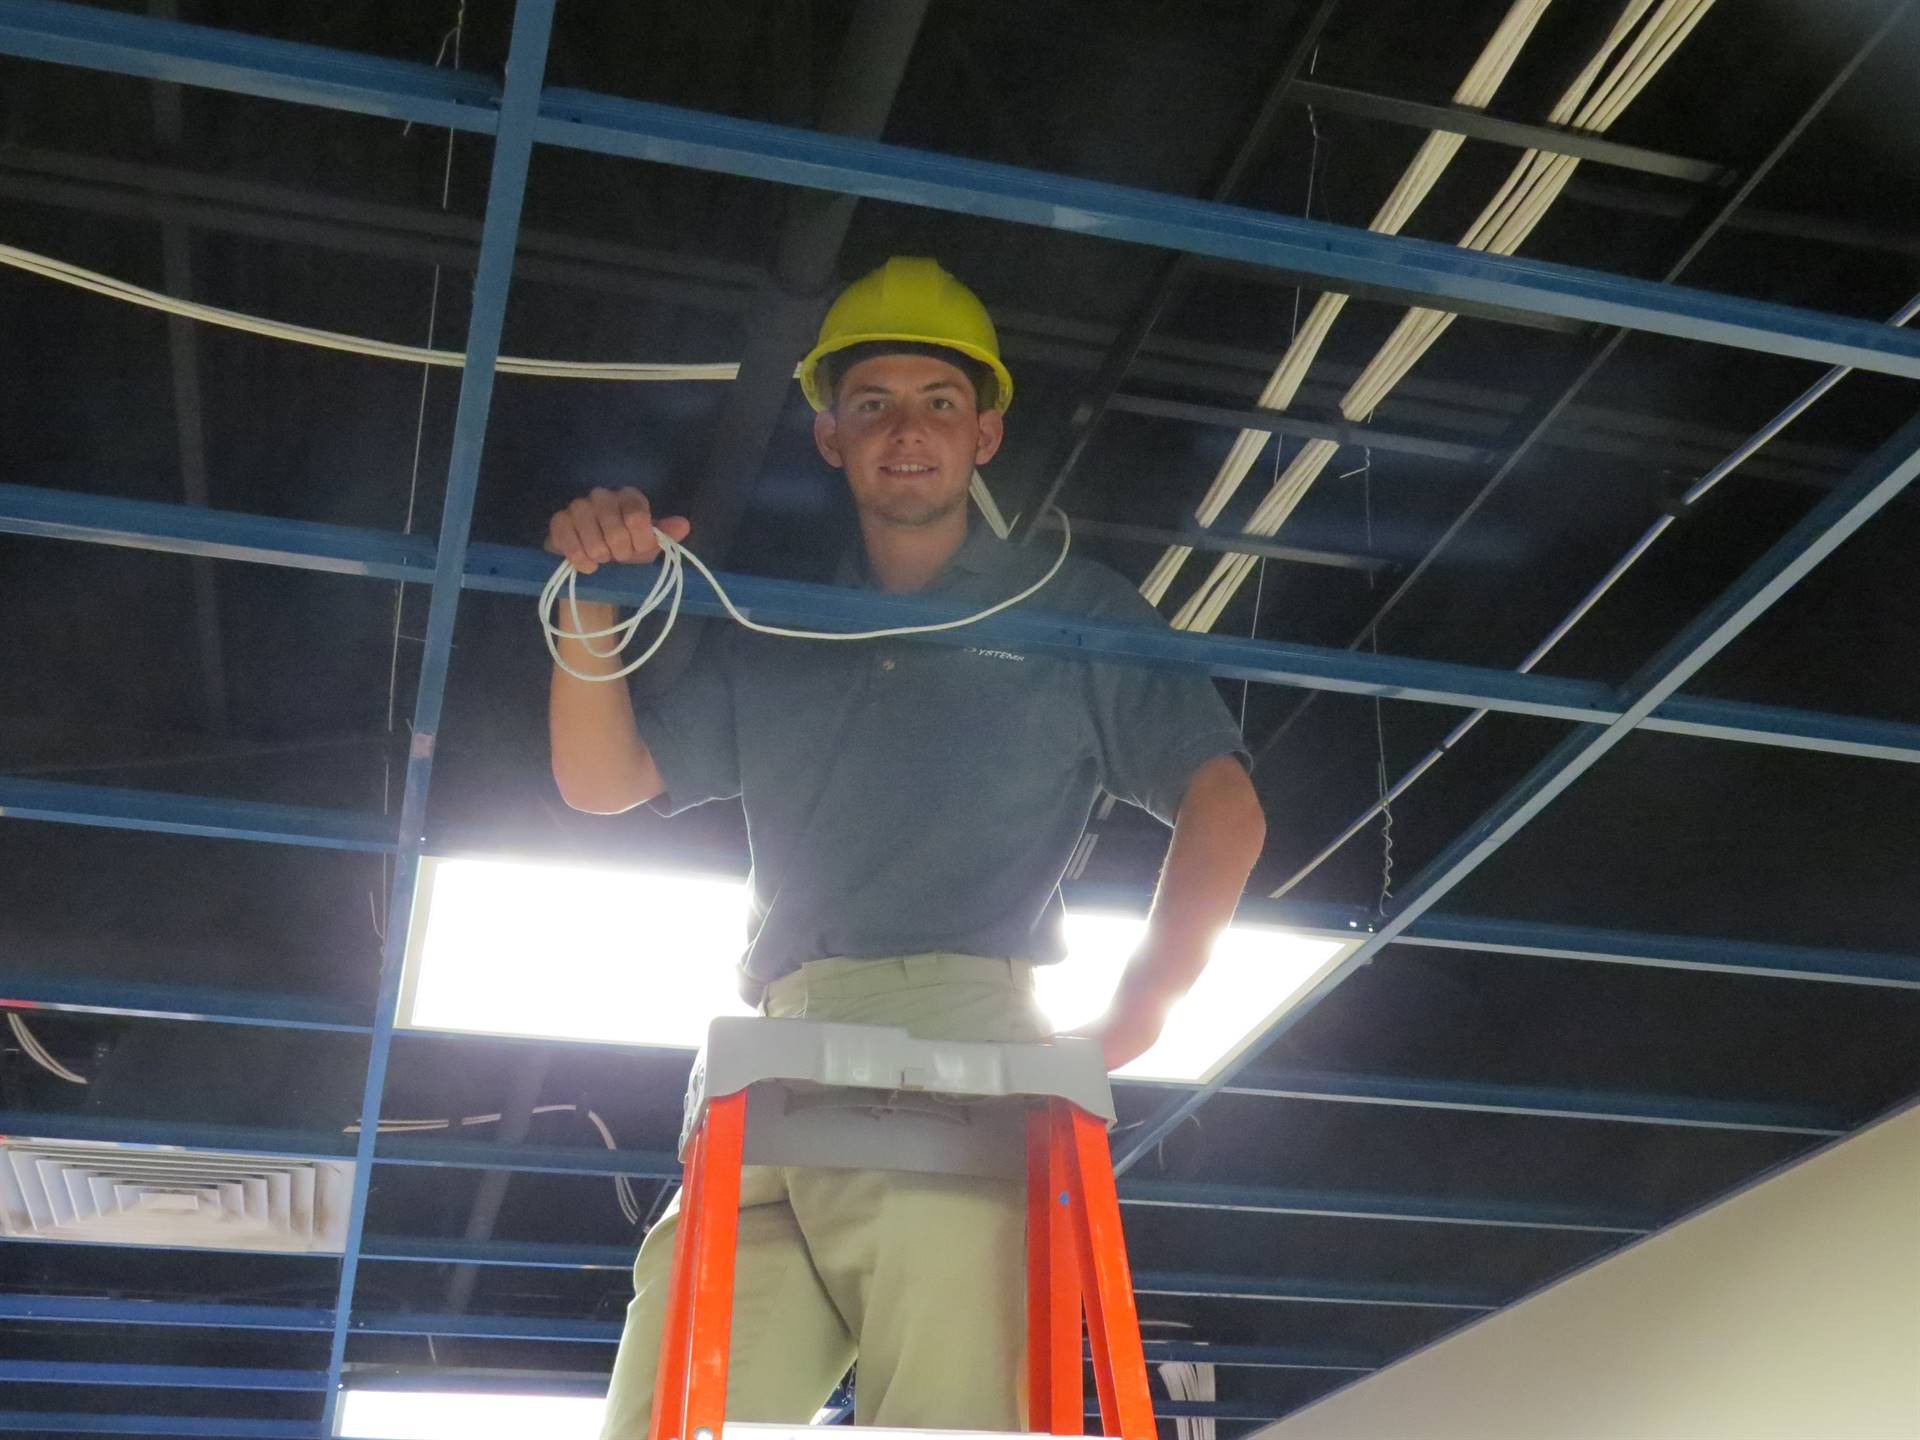 Male student in a yellow hard hat on a ladder installing computer wiring in the ceiling